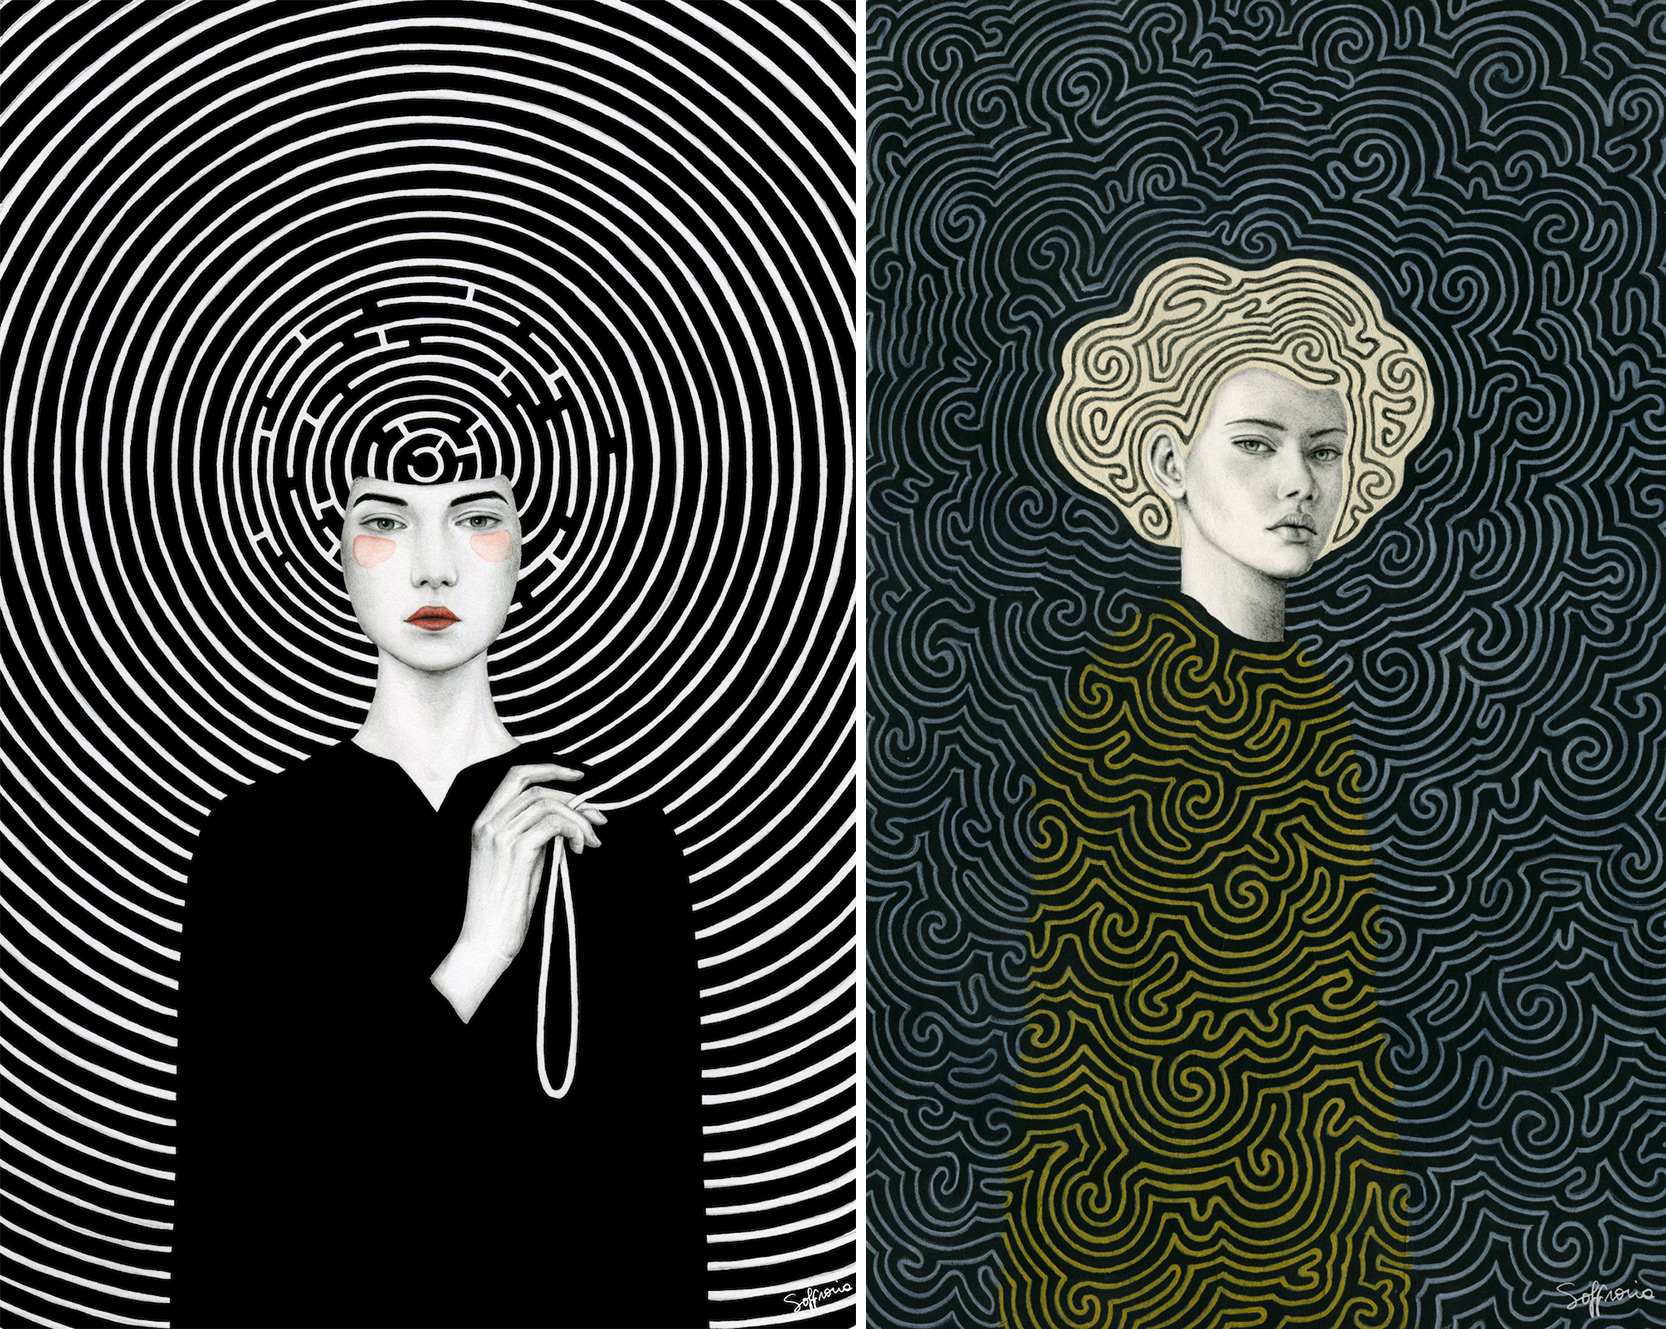 Hypnotic Illustrations Blur Resolute Women into Heavily Patterned Portraits